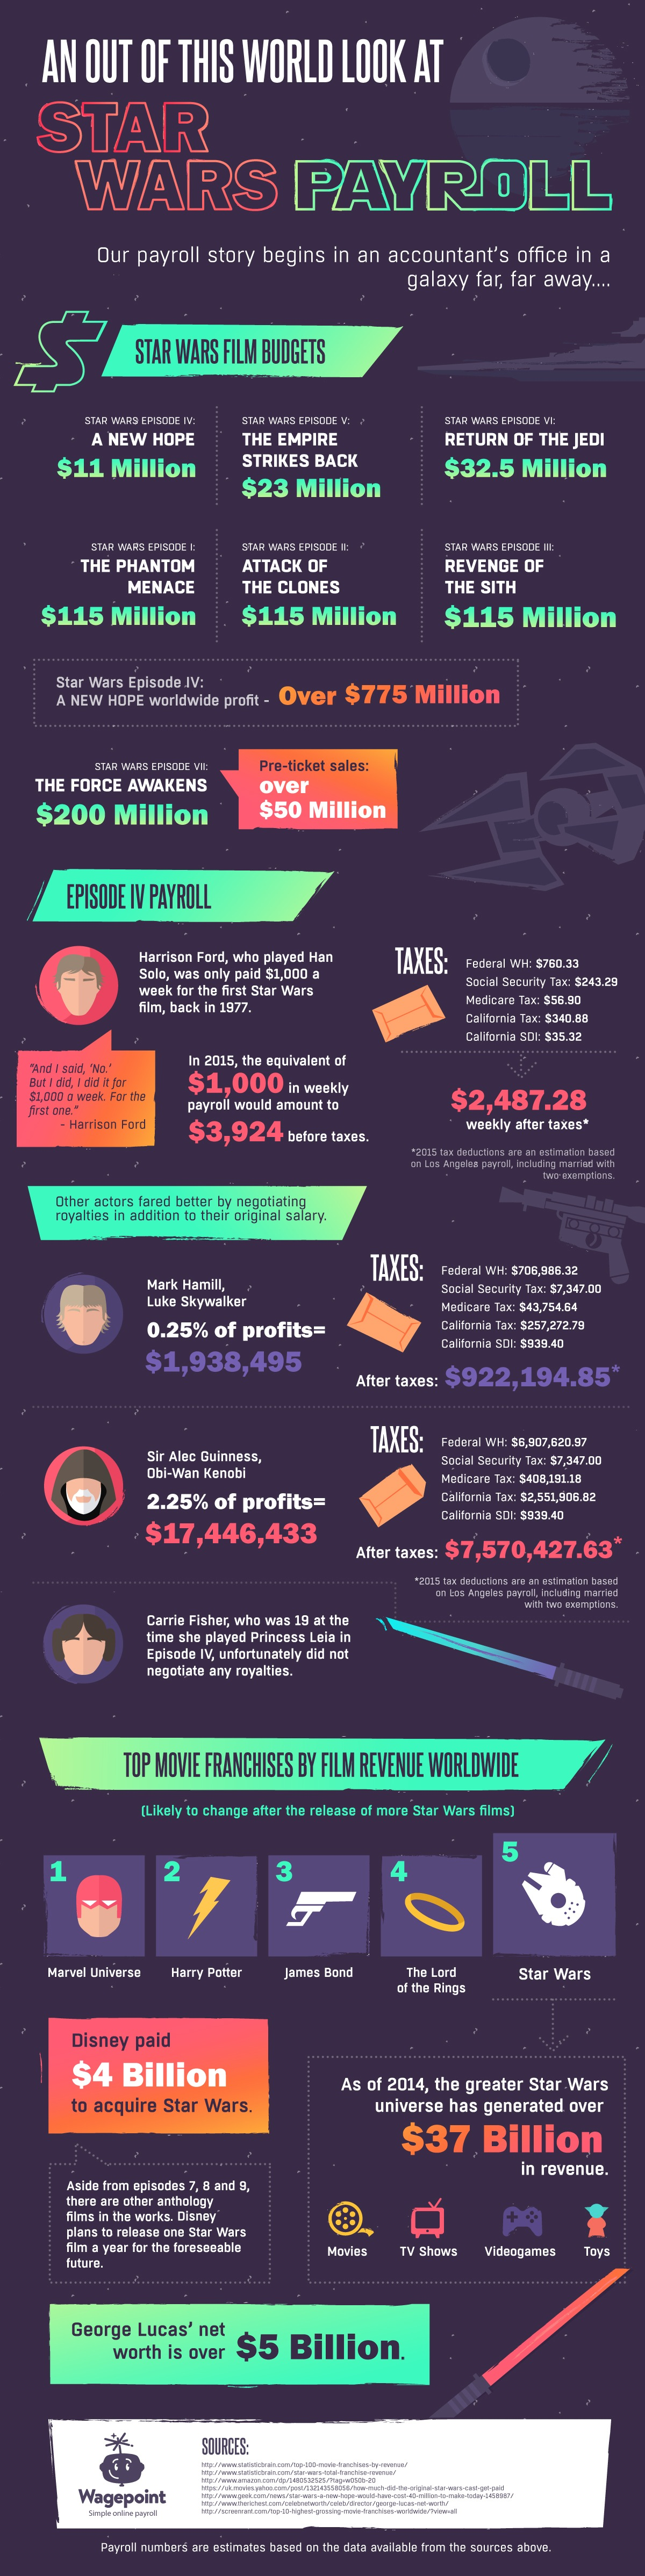 An Out of This World Look at the Payroll for Star Wars